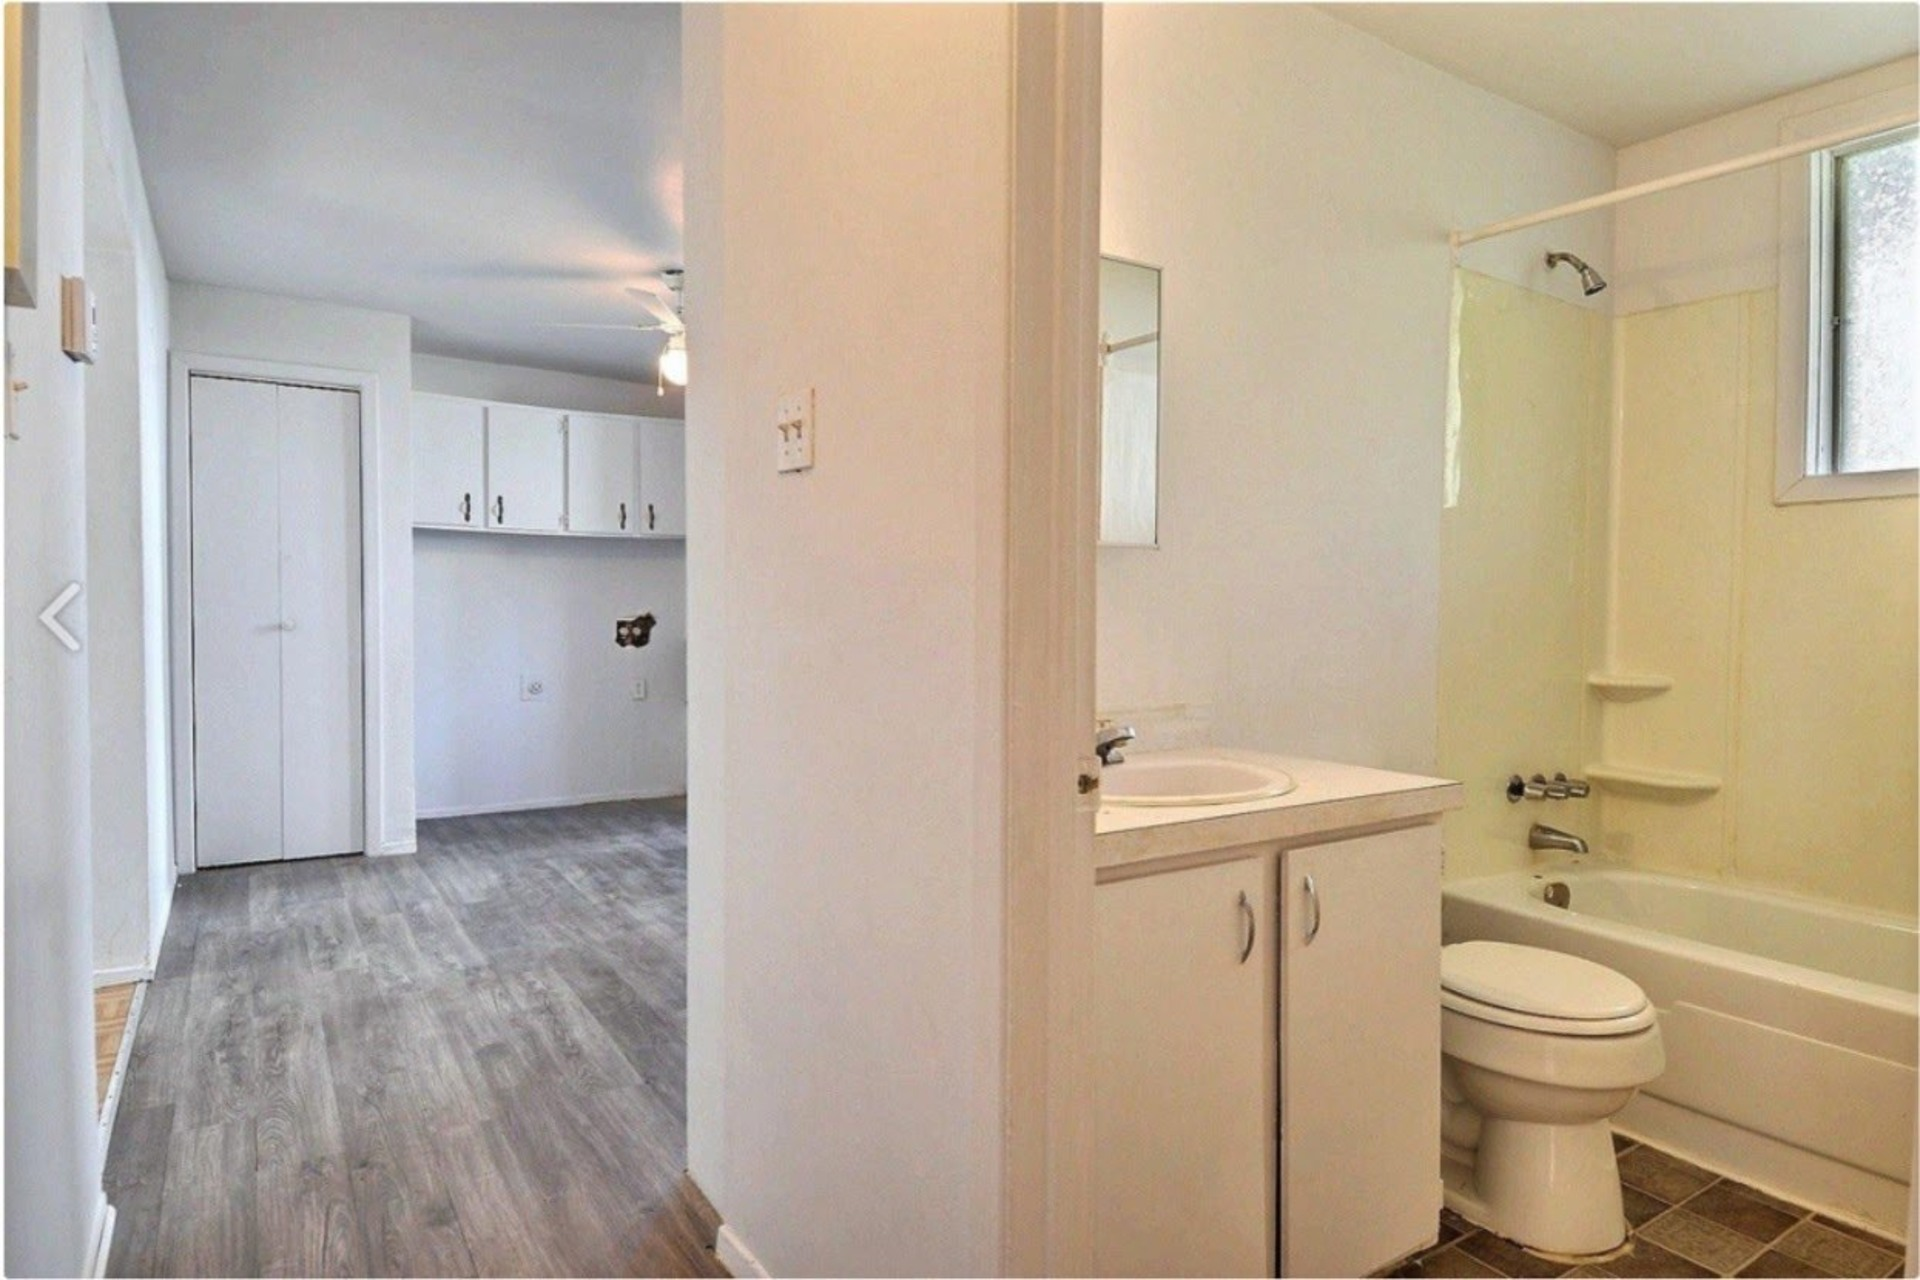 image 6 - Apartment For rent Sorel-Tracy - 5 rooms